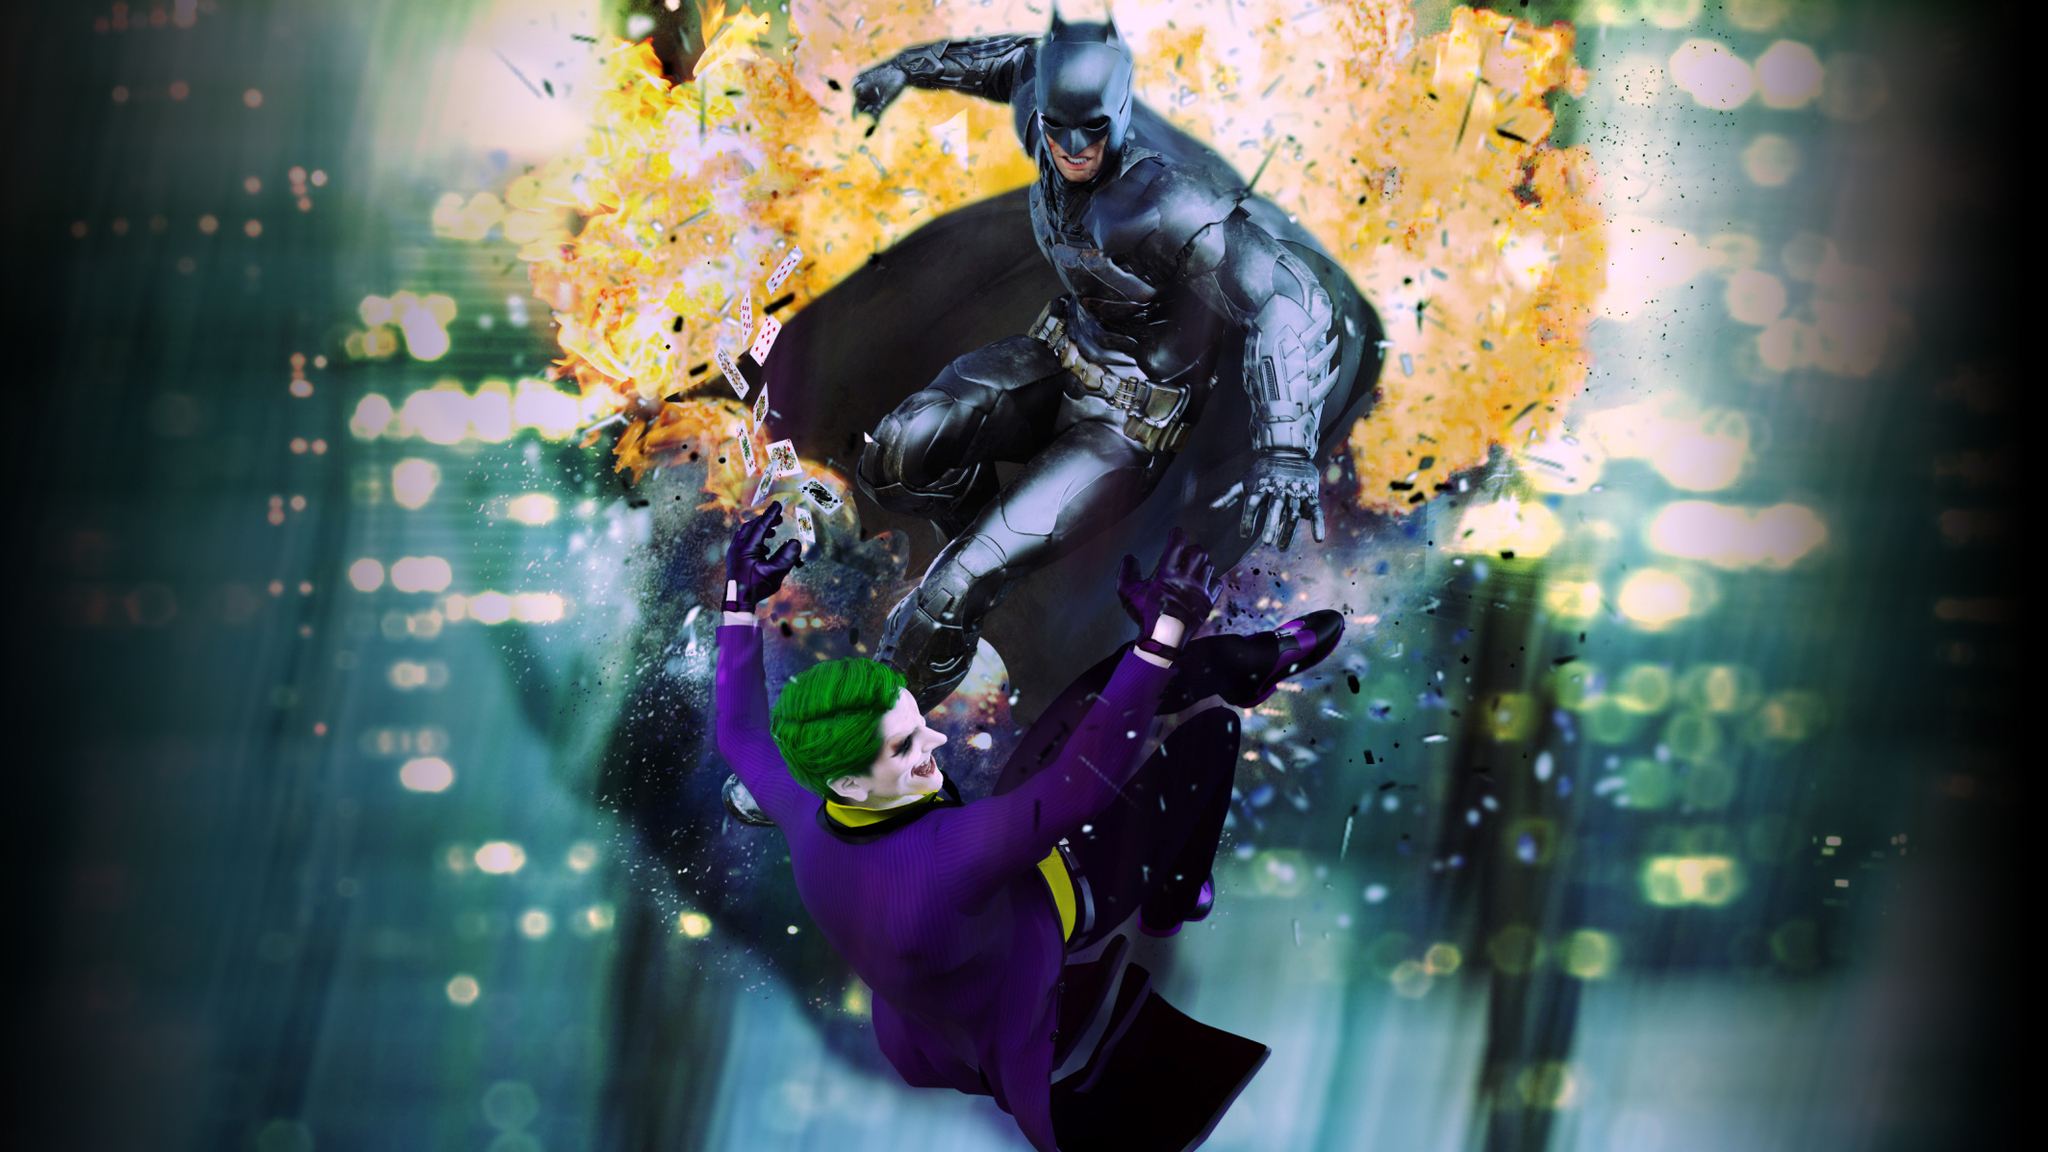 joker-vs-batman-f1.jpg